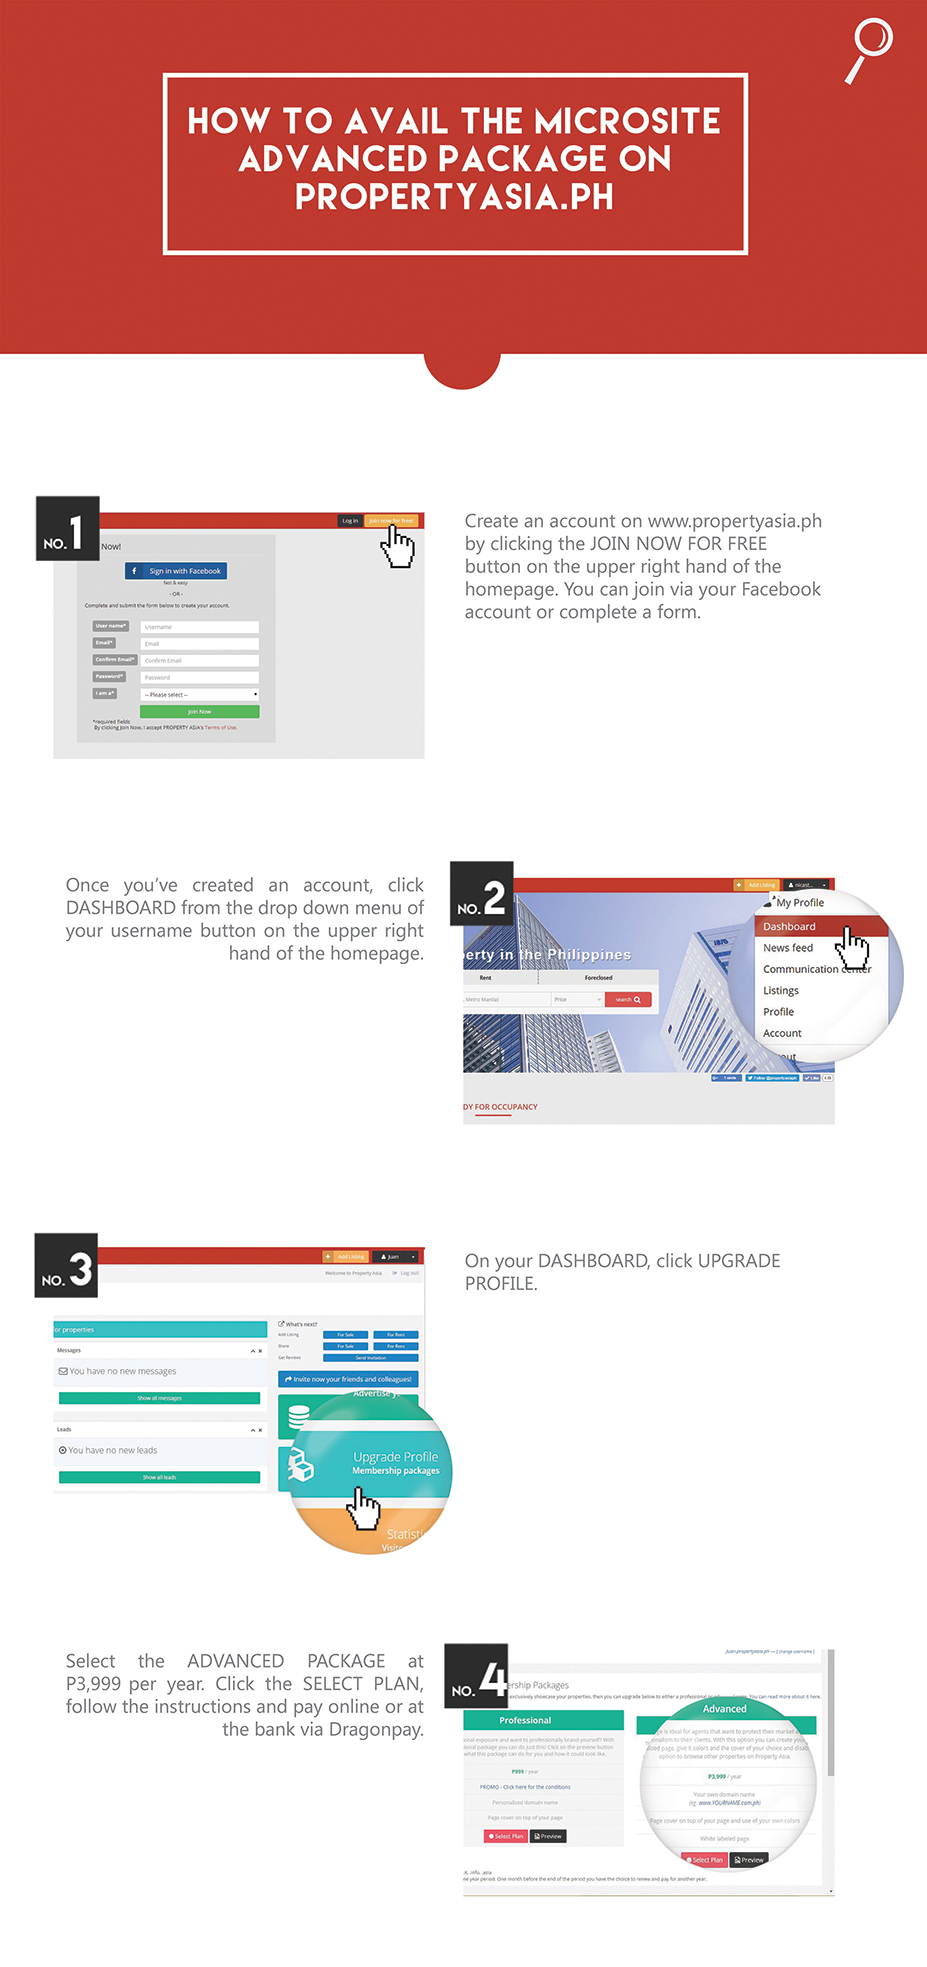 how to avail microsite package